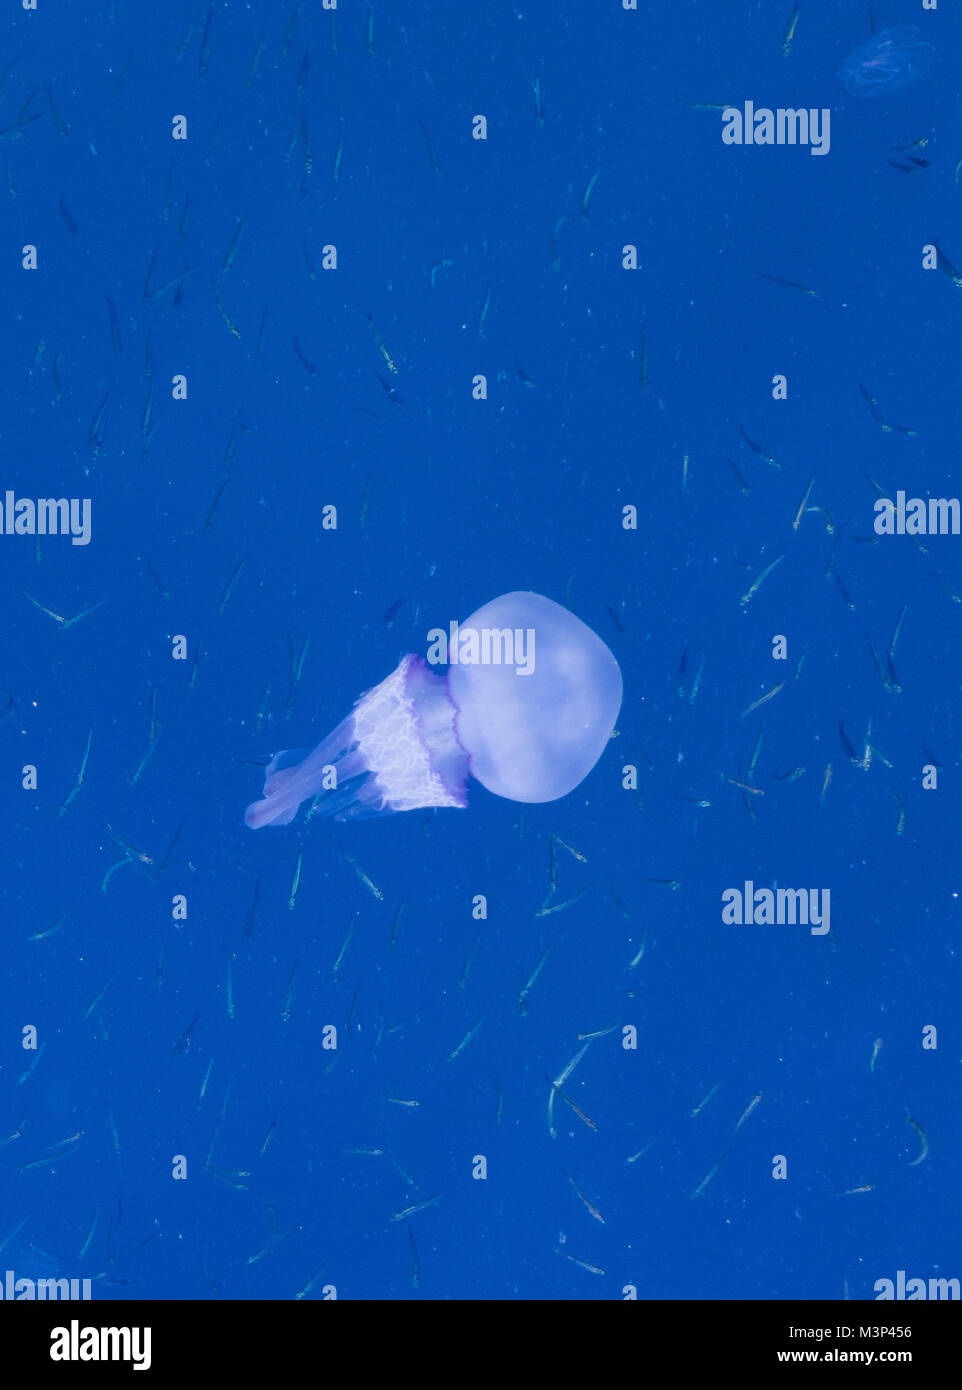 Beautiful glowing blue jellyfish in blue water sea with little fish background Stock Photo